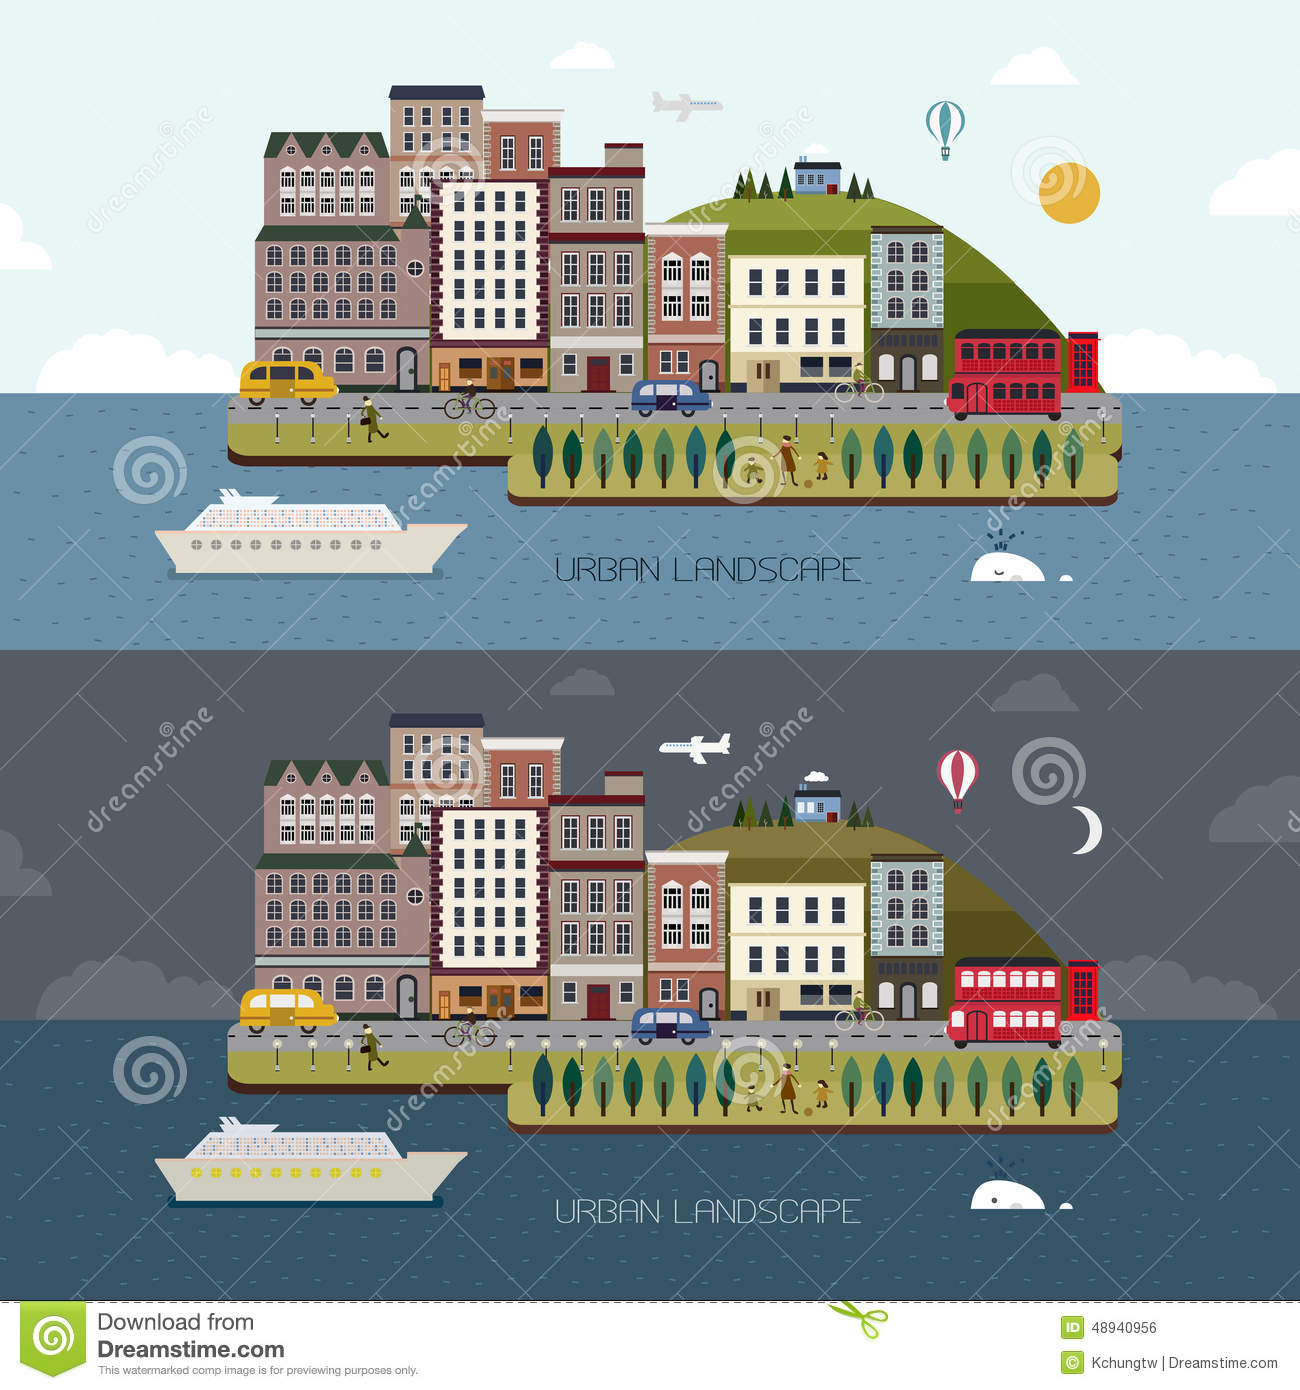 Landscape Design In A Day: Lovely City Landscape Day And Night In Flat Design Vector